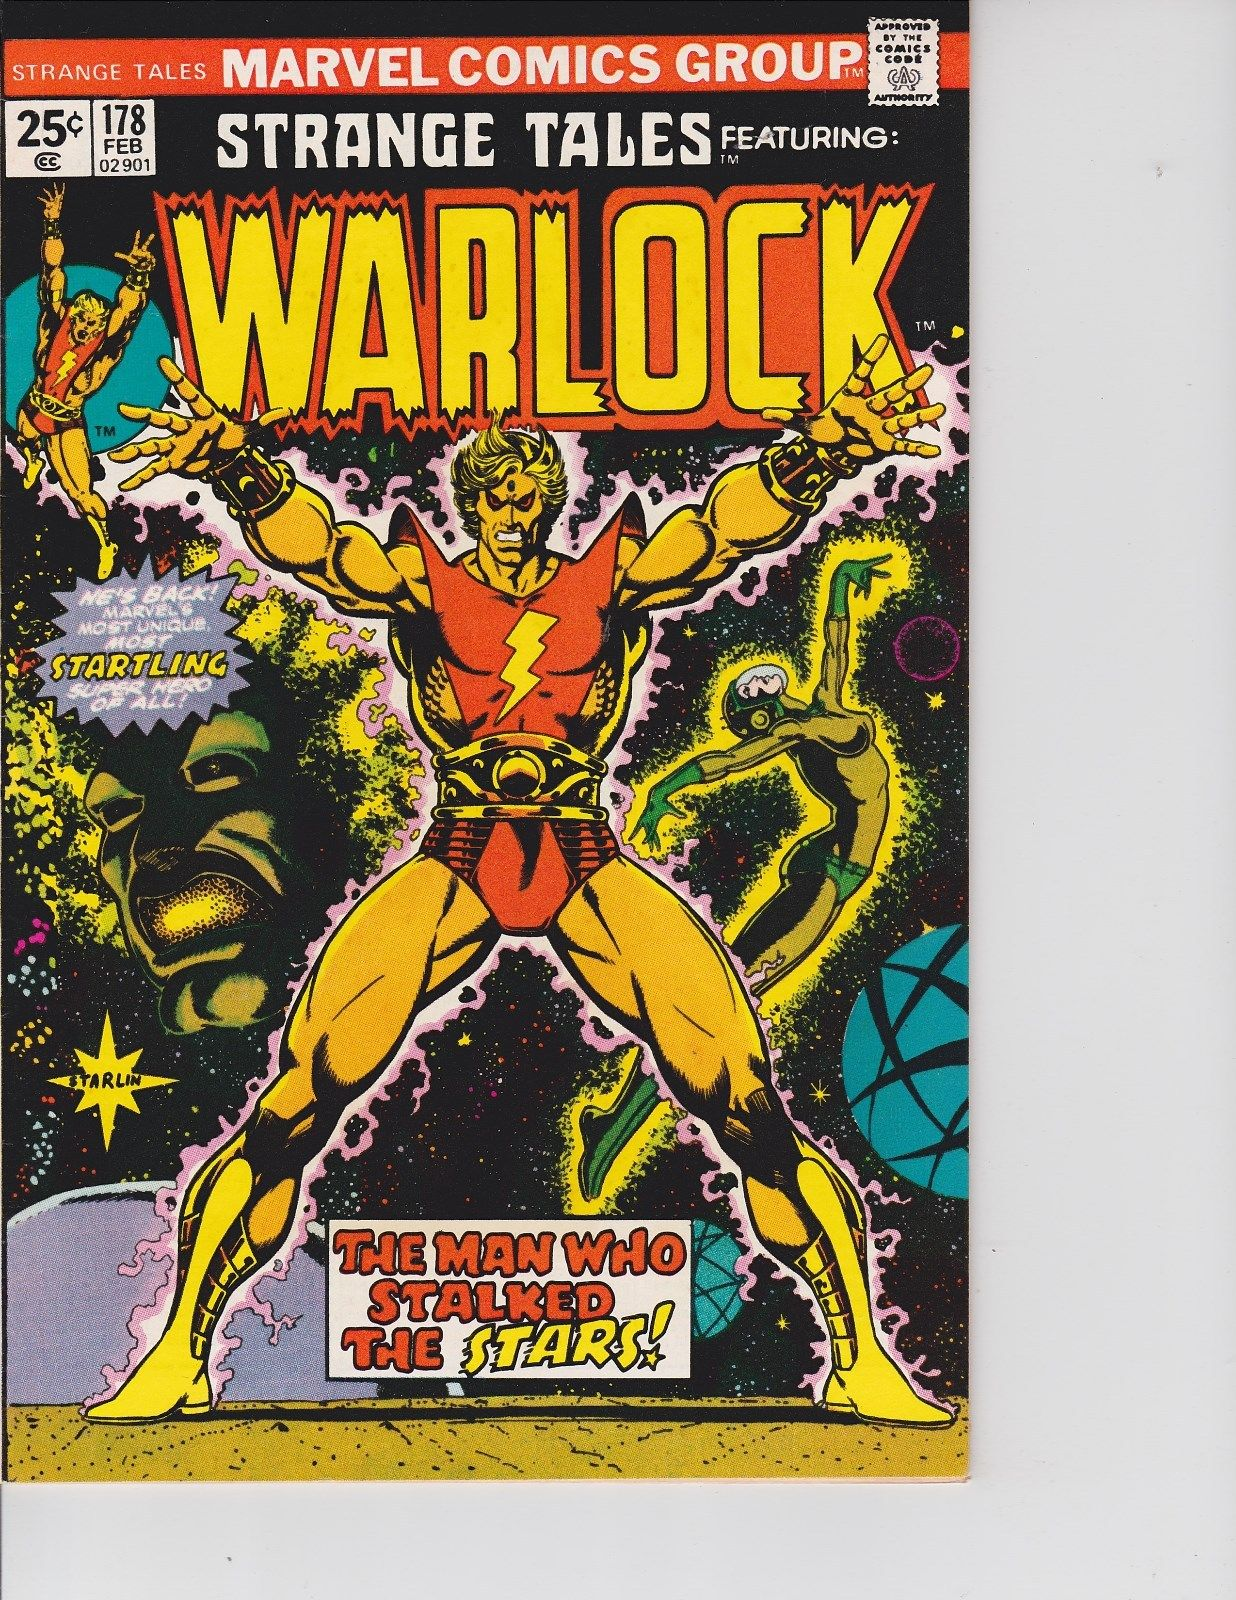 Strange Tales  #178 ( Warlock & Him Origin Relold  VF+  8.5 ) Feb-1975,  Marvel